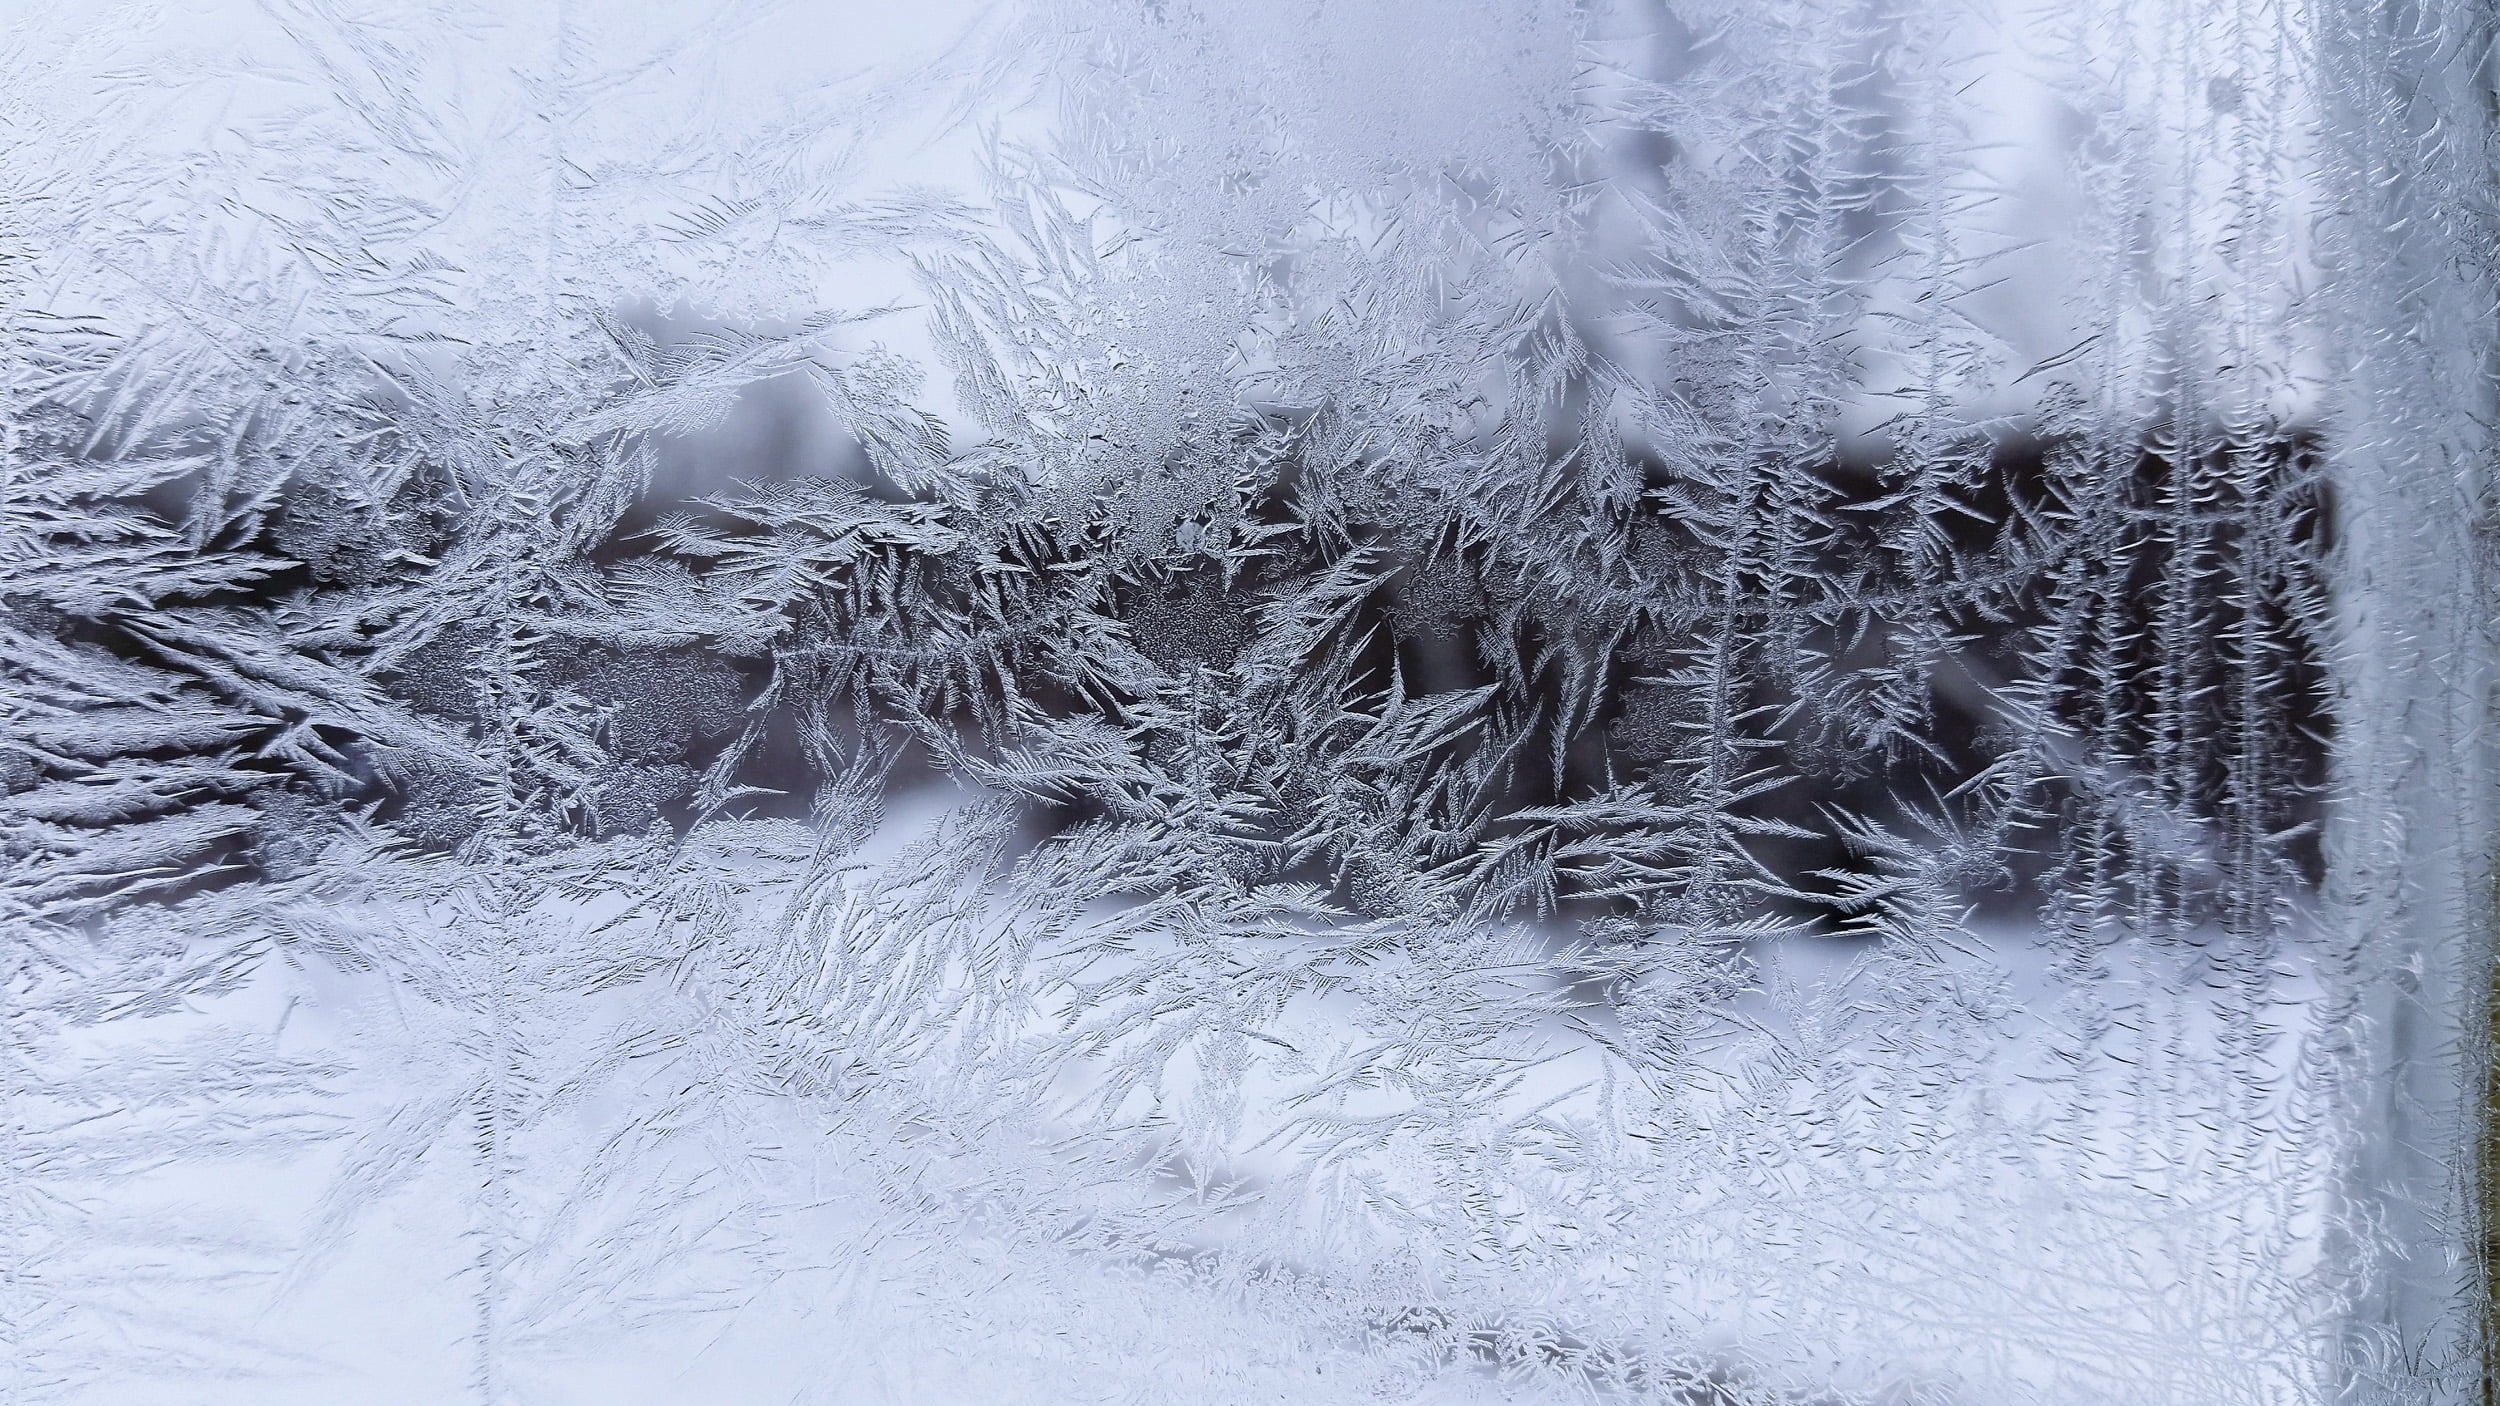 Jack Frost's work